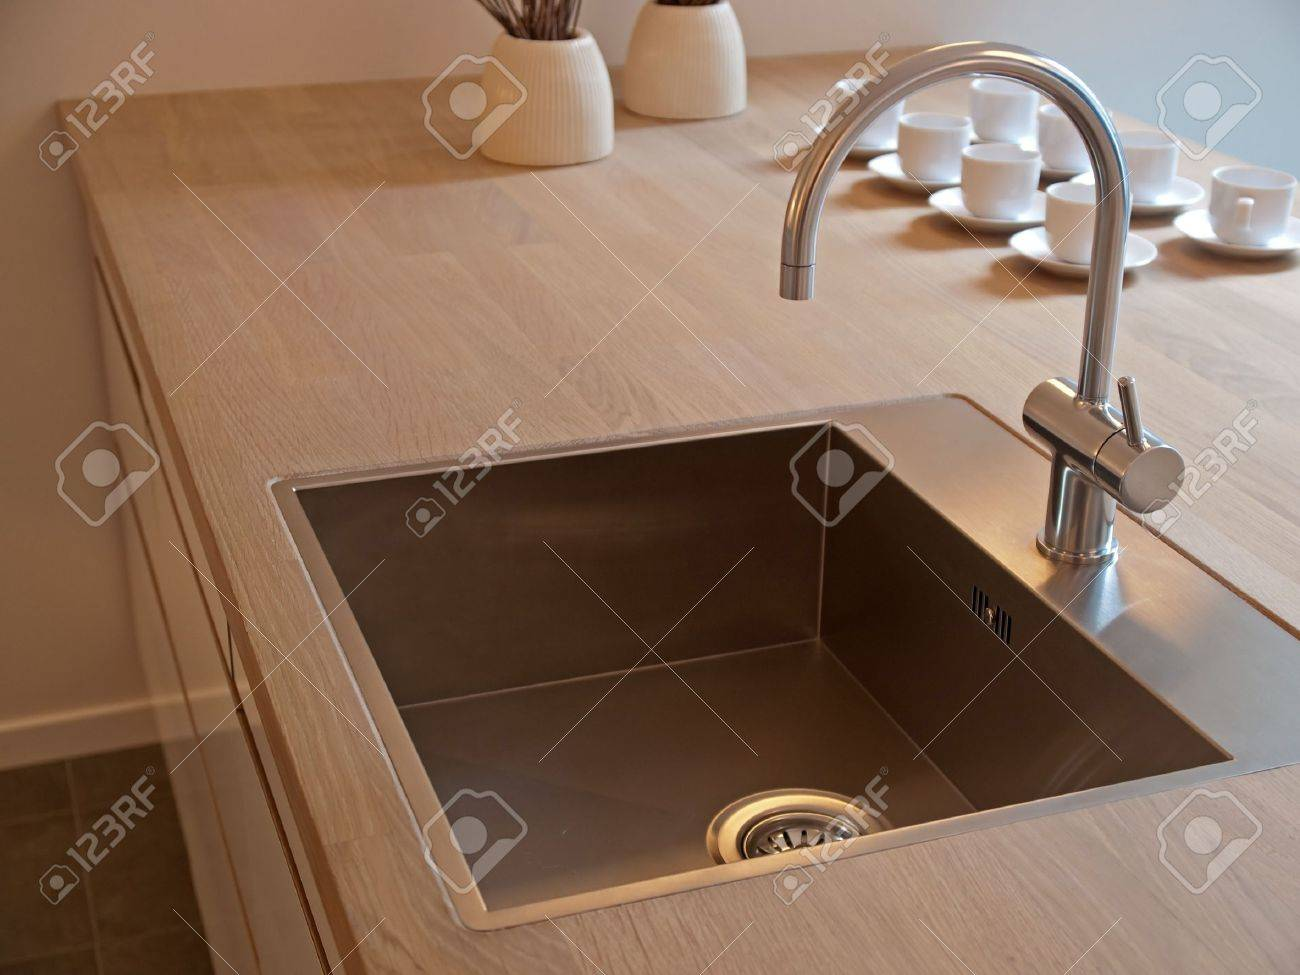 Kitchen Sink: Details Of Modern Design Trendy Kitchen Sink With Water Tap